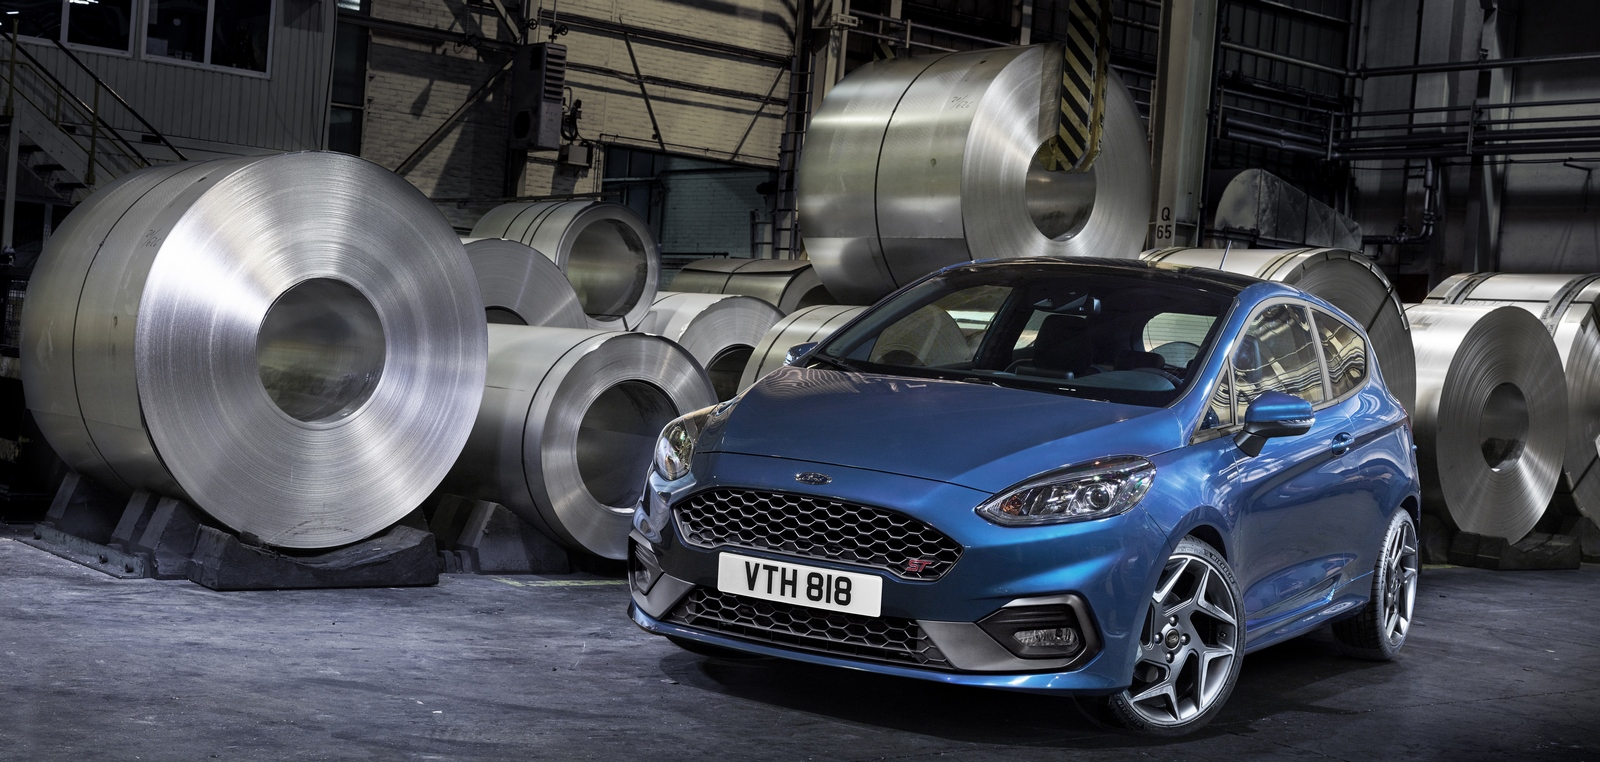 Nouvelle Ford Fiesta ST 200 ch 2018 : Le sport sur 3 cylindres.